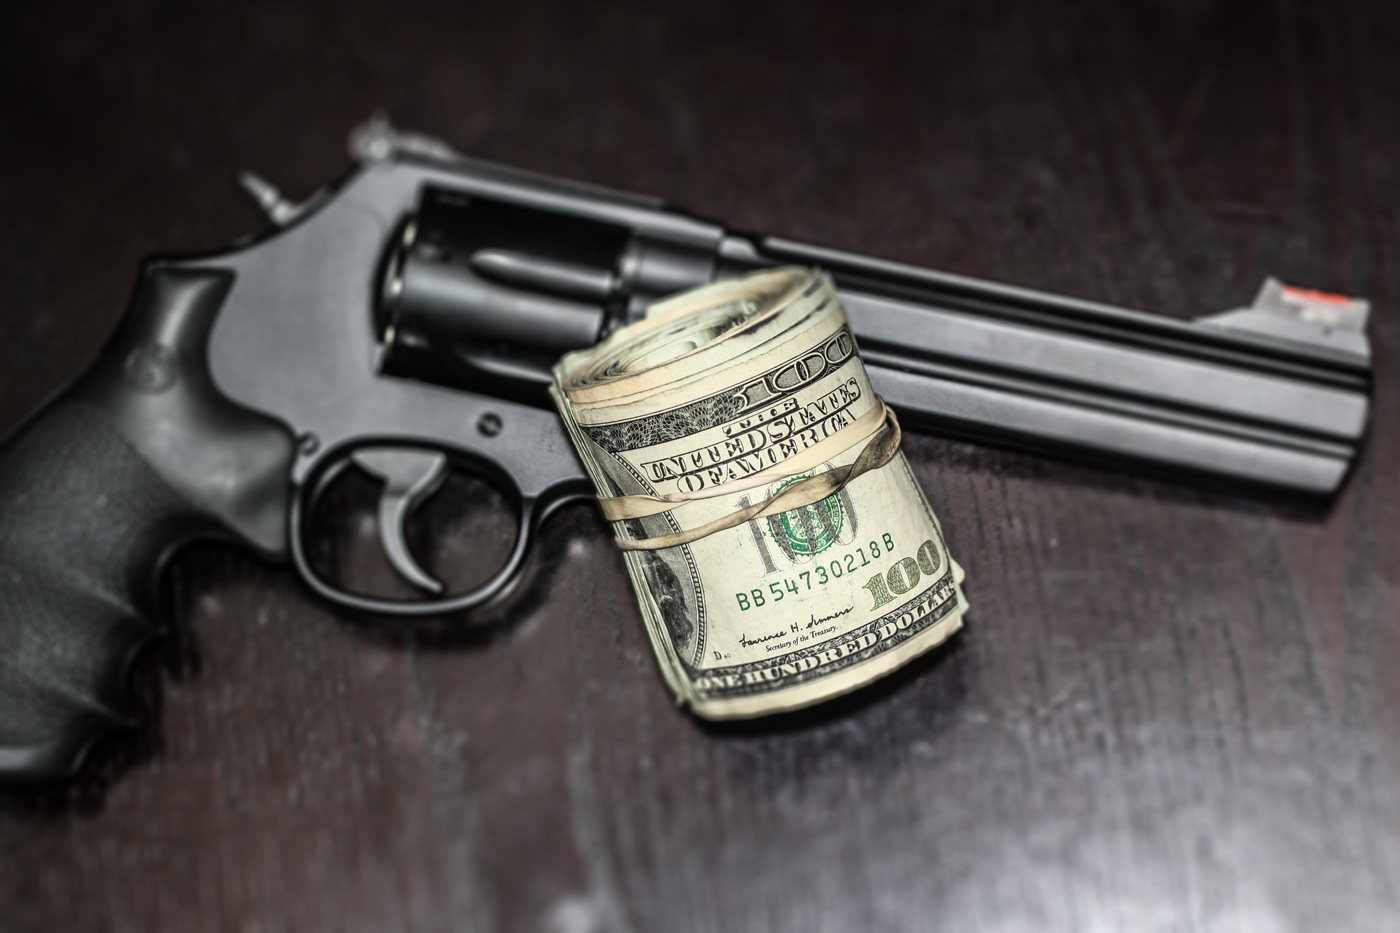 Smith and Wesson .357 Magnum and roll of money